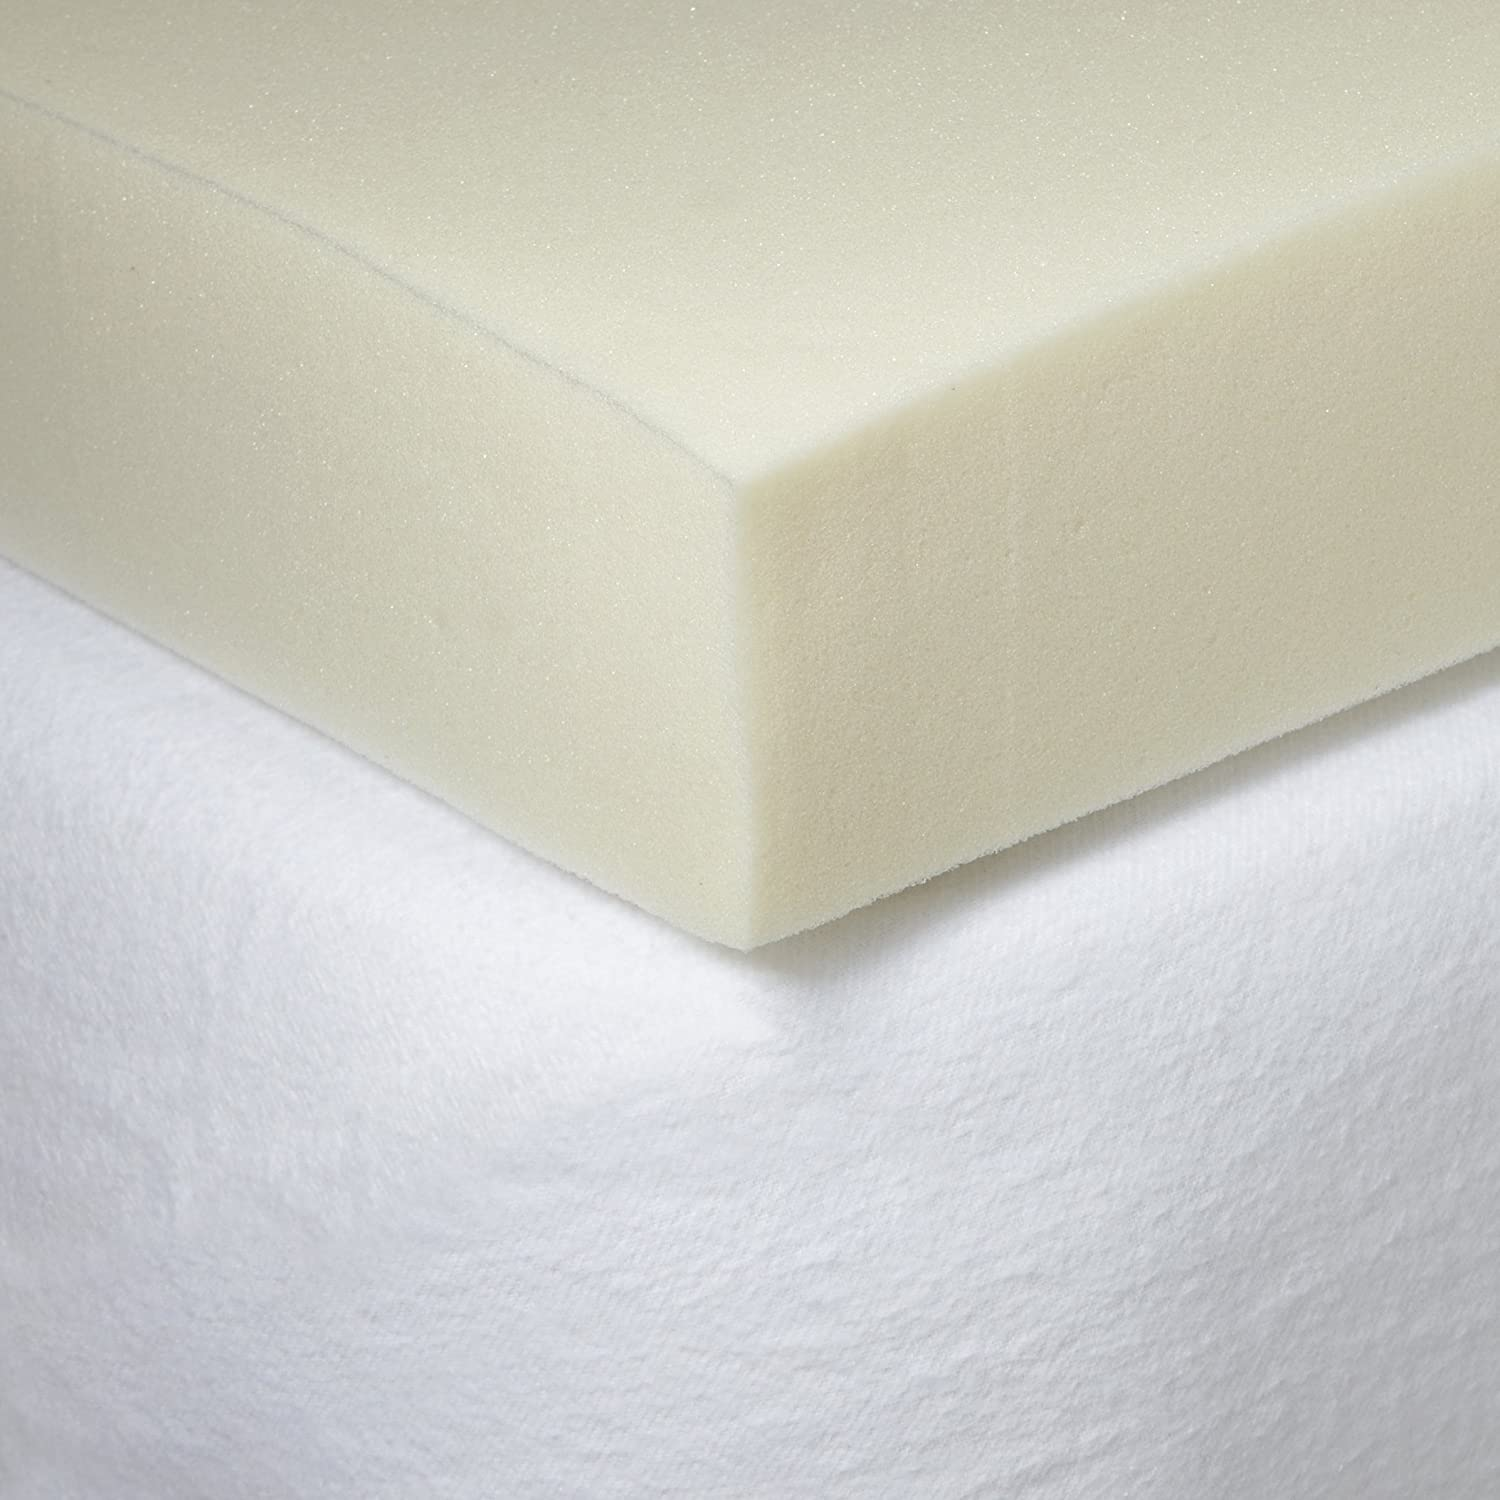 Amazon.com: Iso-Cool Memory Foam Mattress Topper with Outlast Cover, King:  Home & Kitchen